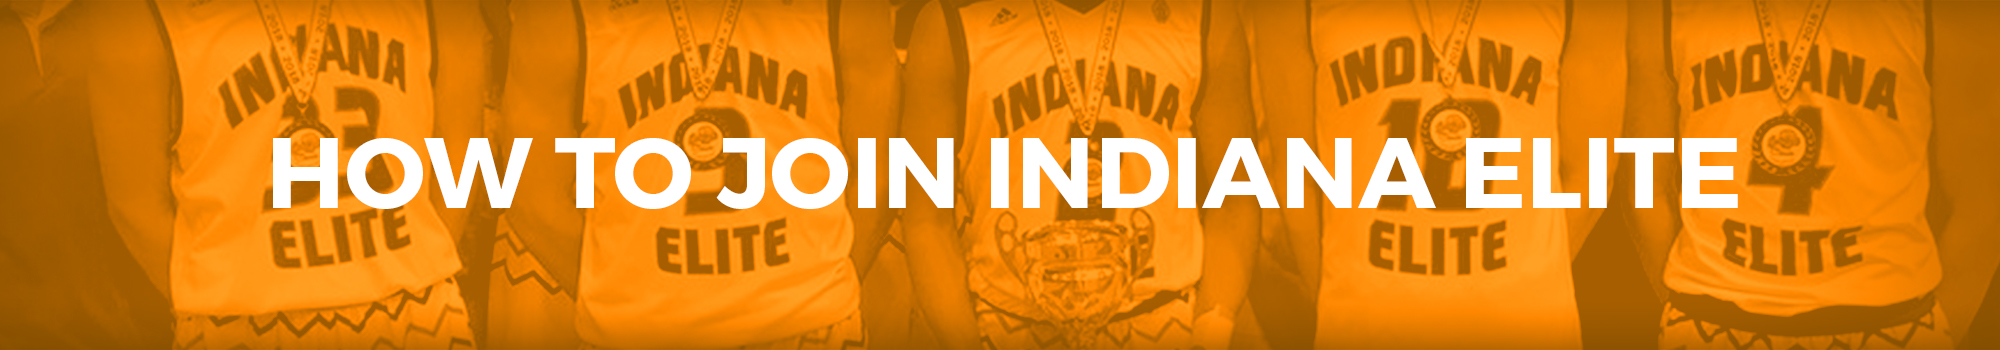 How to Join Indiana Elite